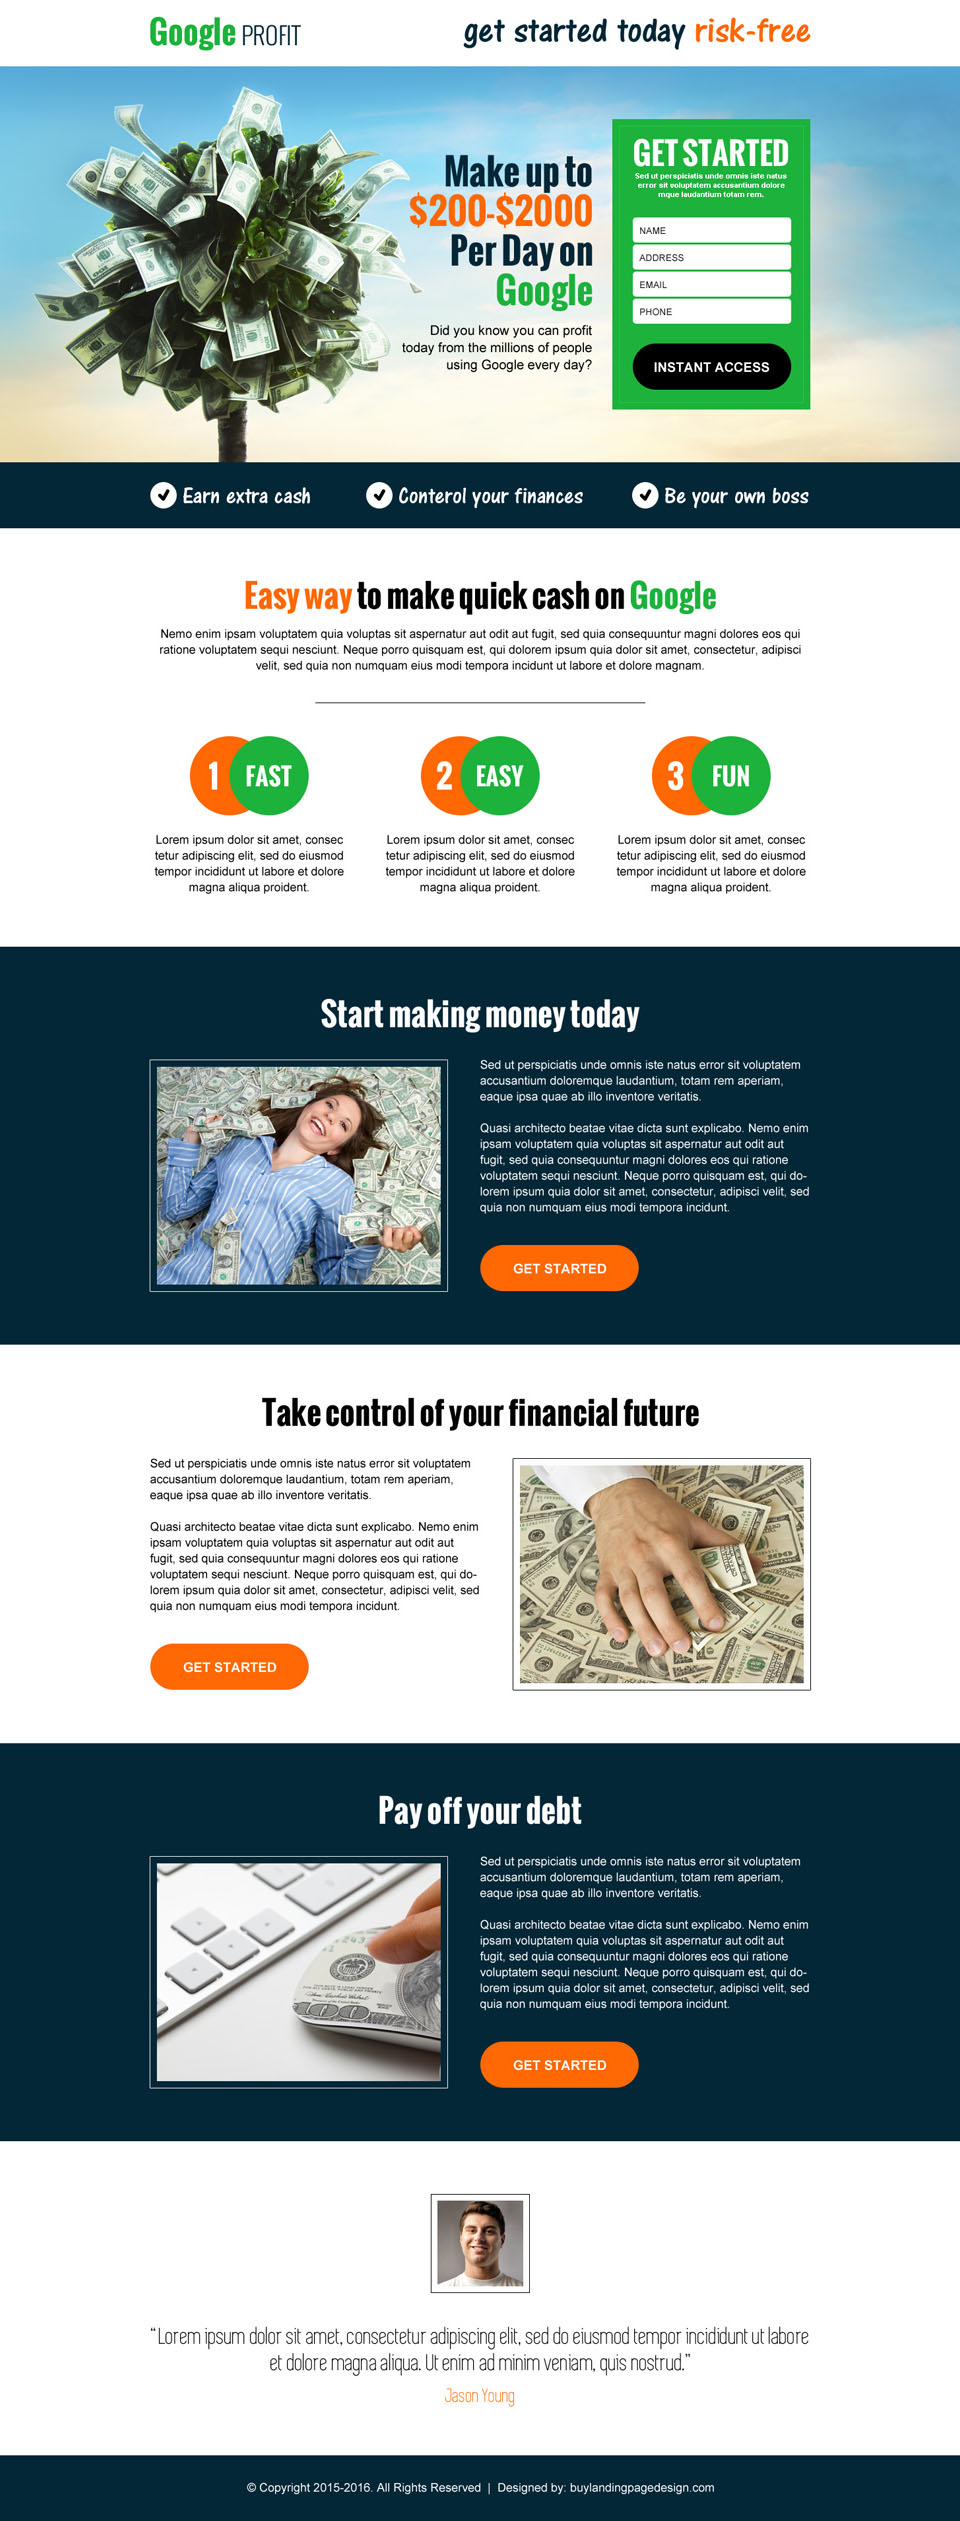 google-money-responsive-lead-capture-landing-page-design-for-quick-cash-001